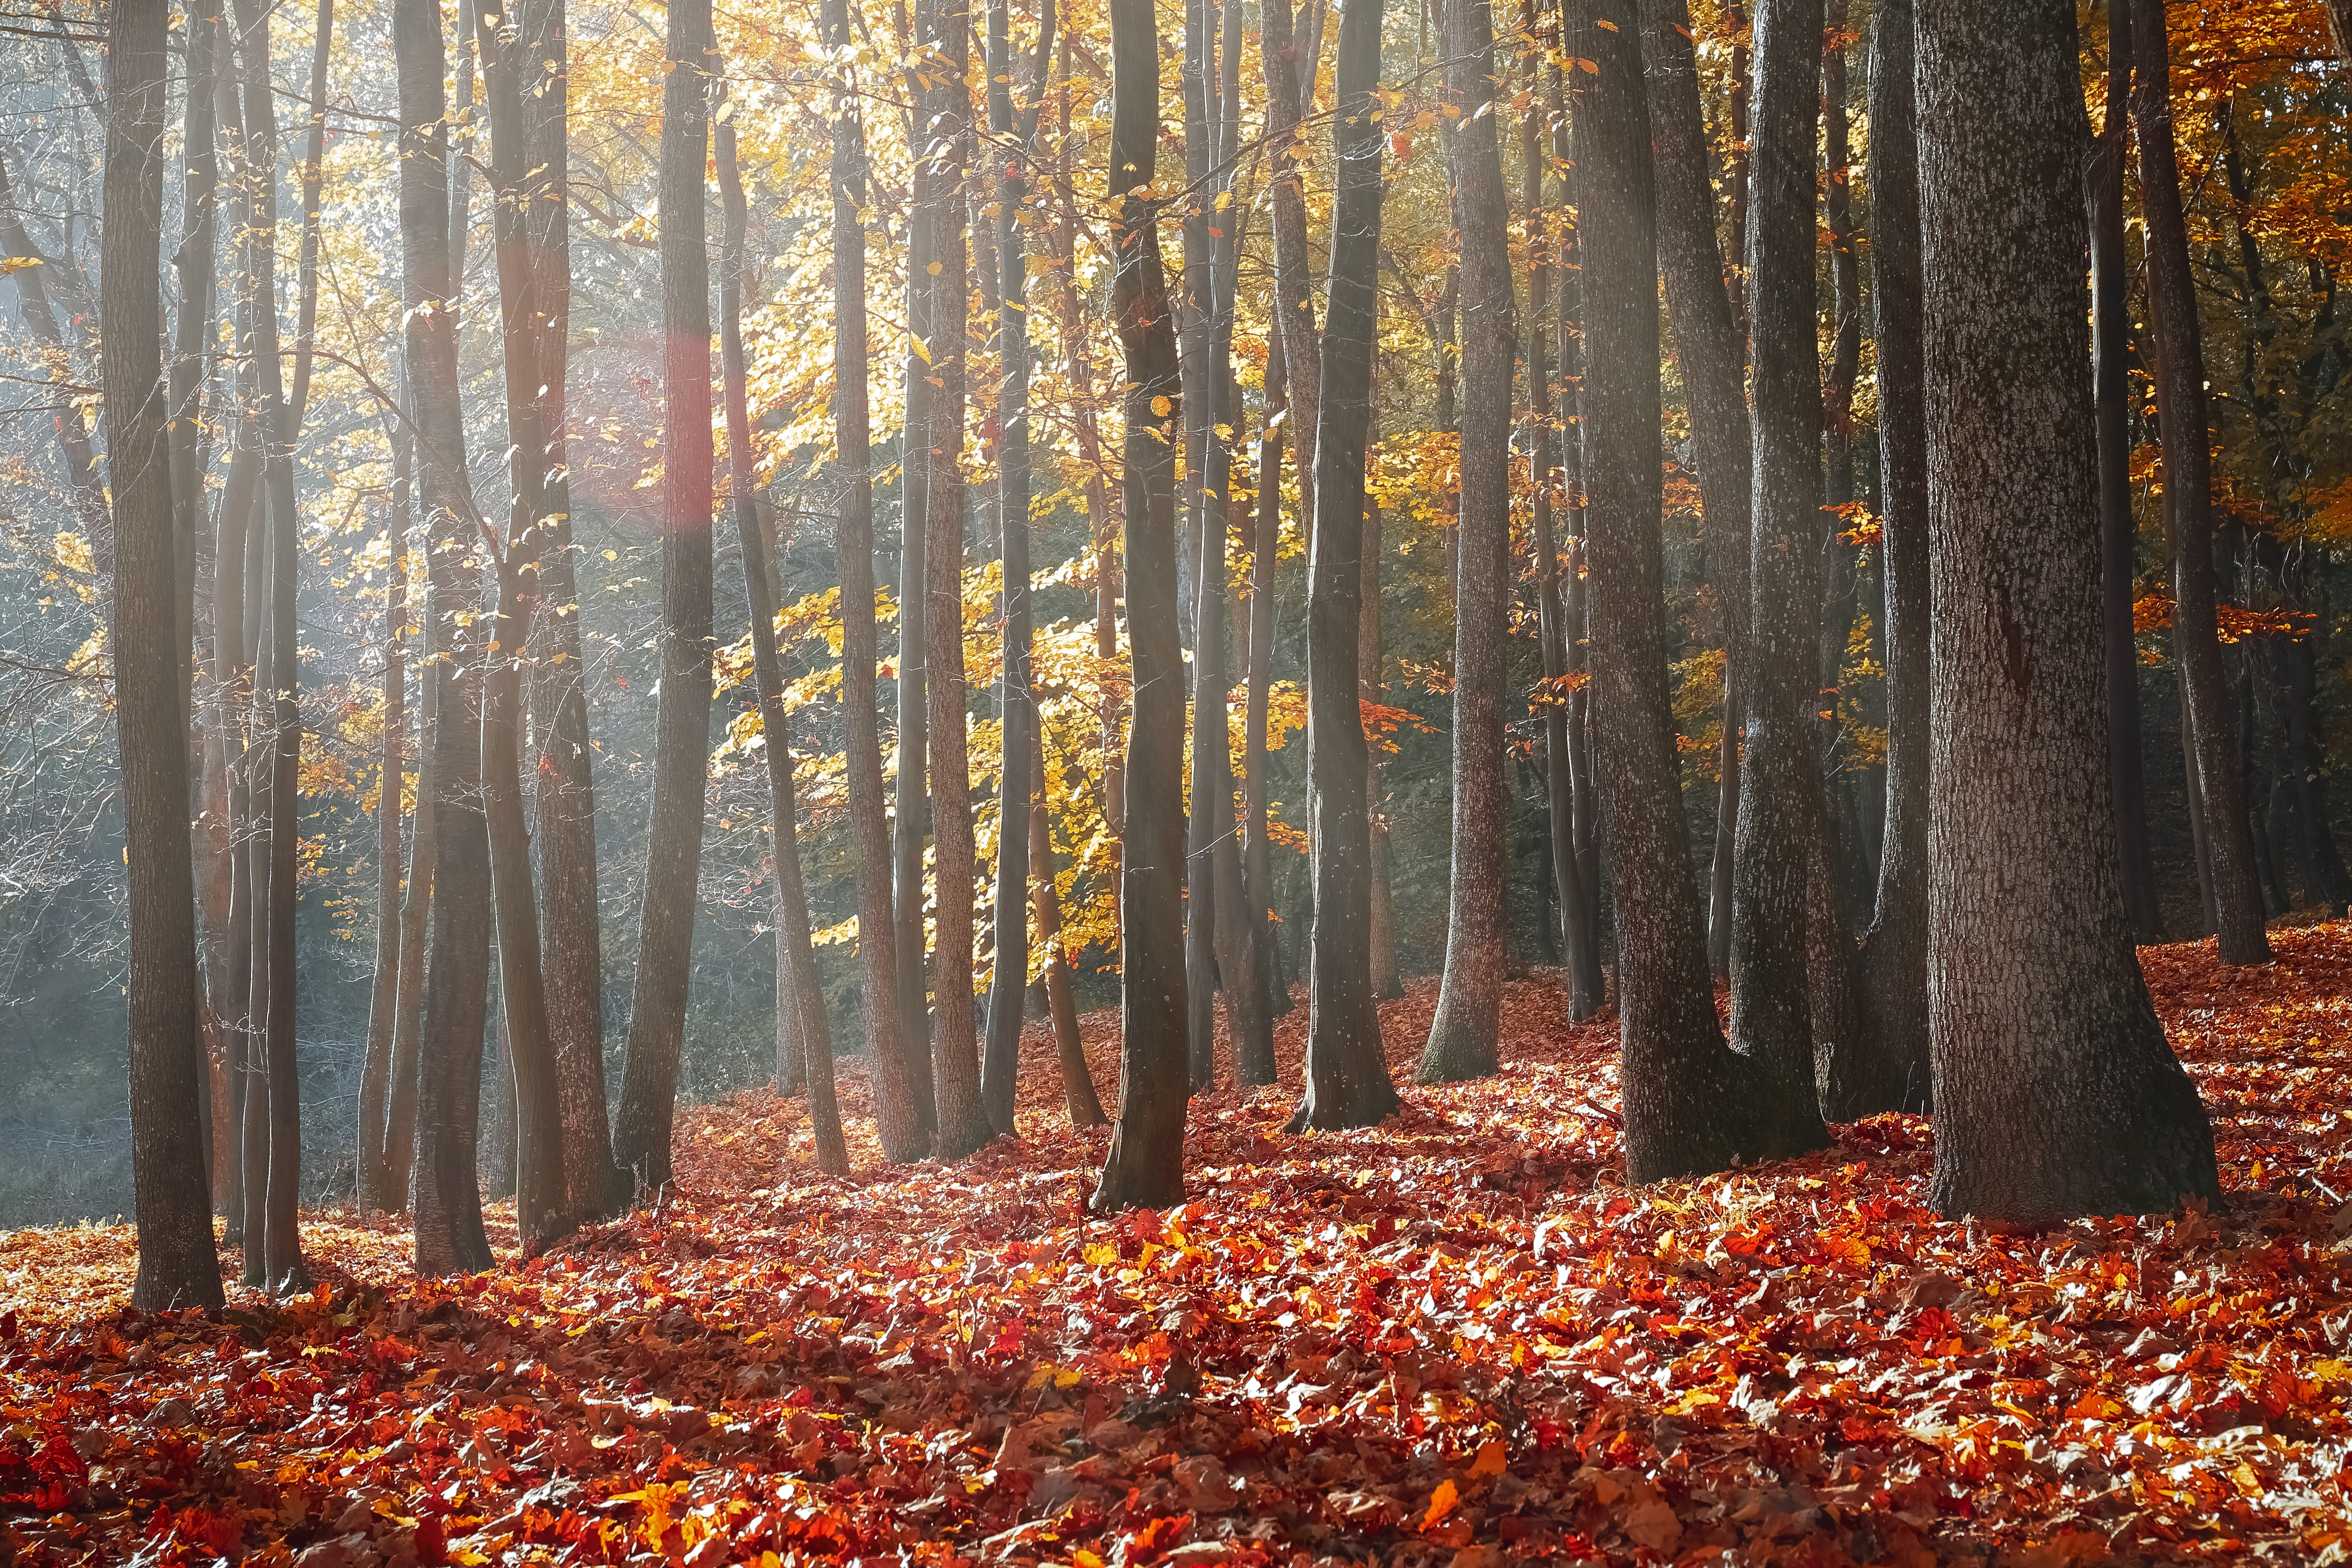 Landscape Photography of Forest during Autumn Season, Autumn, Maple, Trees, Sunbeam, HQ Photo